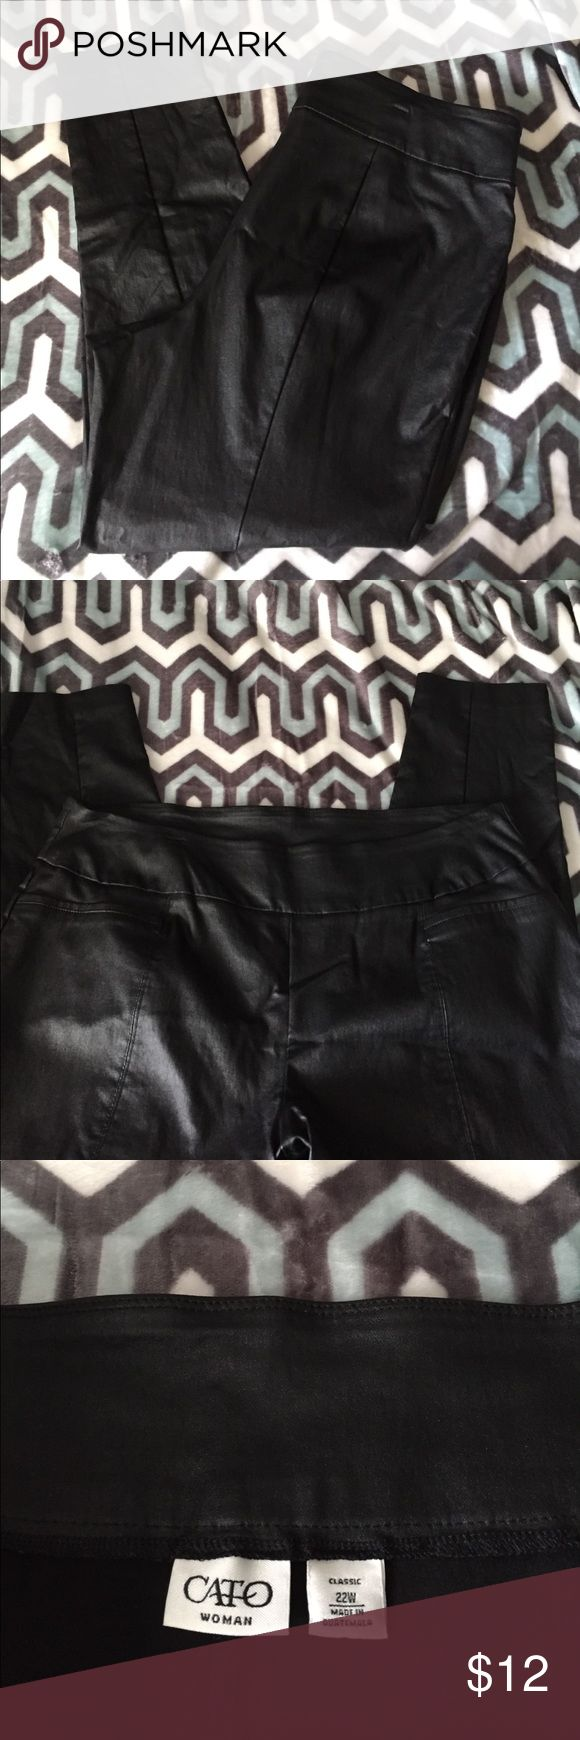 Cato faux leather skinny jeans 🔥PLUS🔥 These pants are amazing and look very sexy on. 🔥Perfect condition 🔥 these are almost like leggings but with better material Cato Pants Skinny